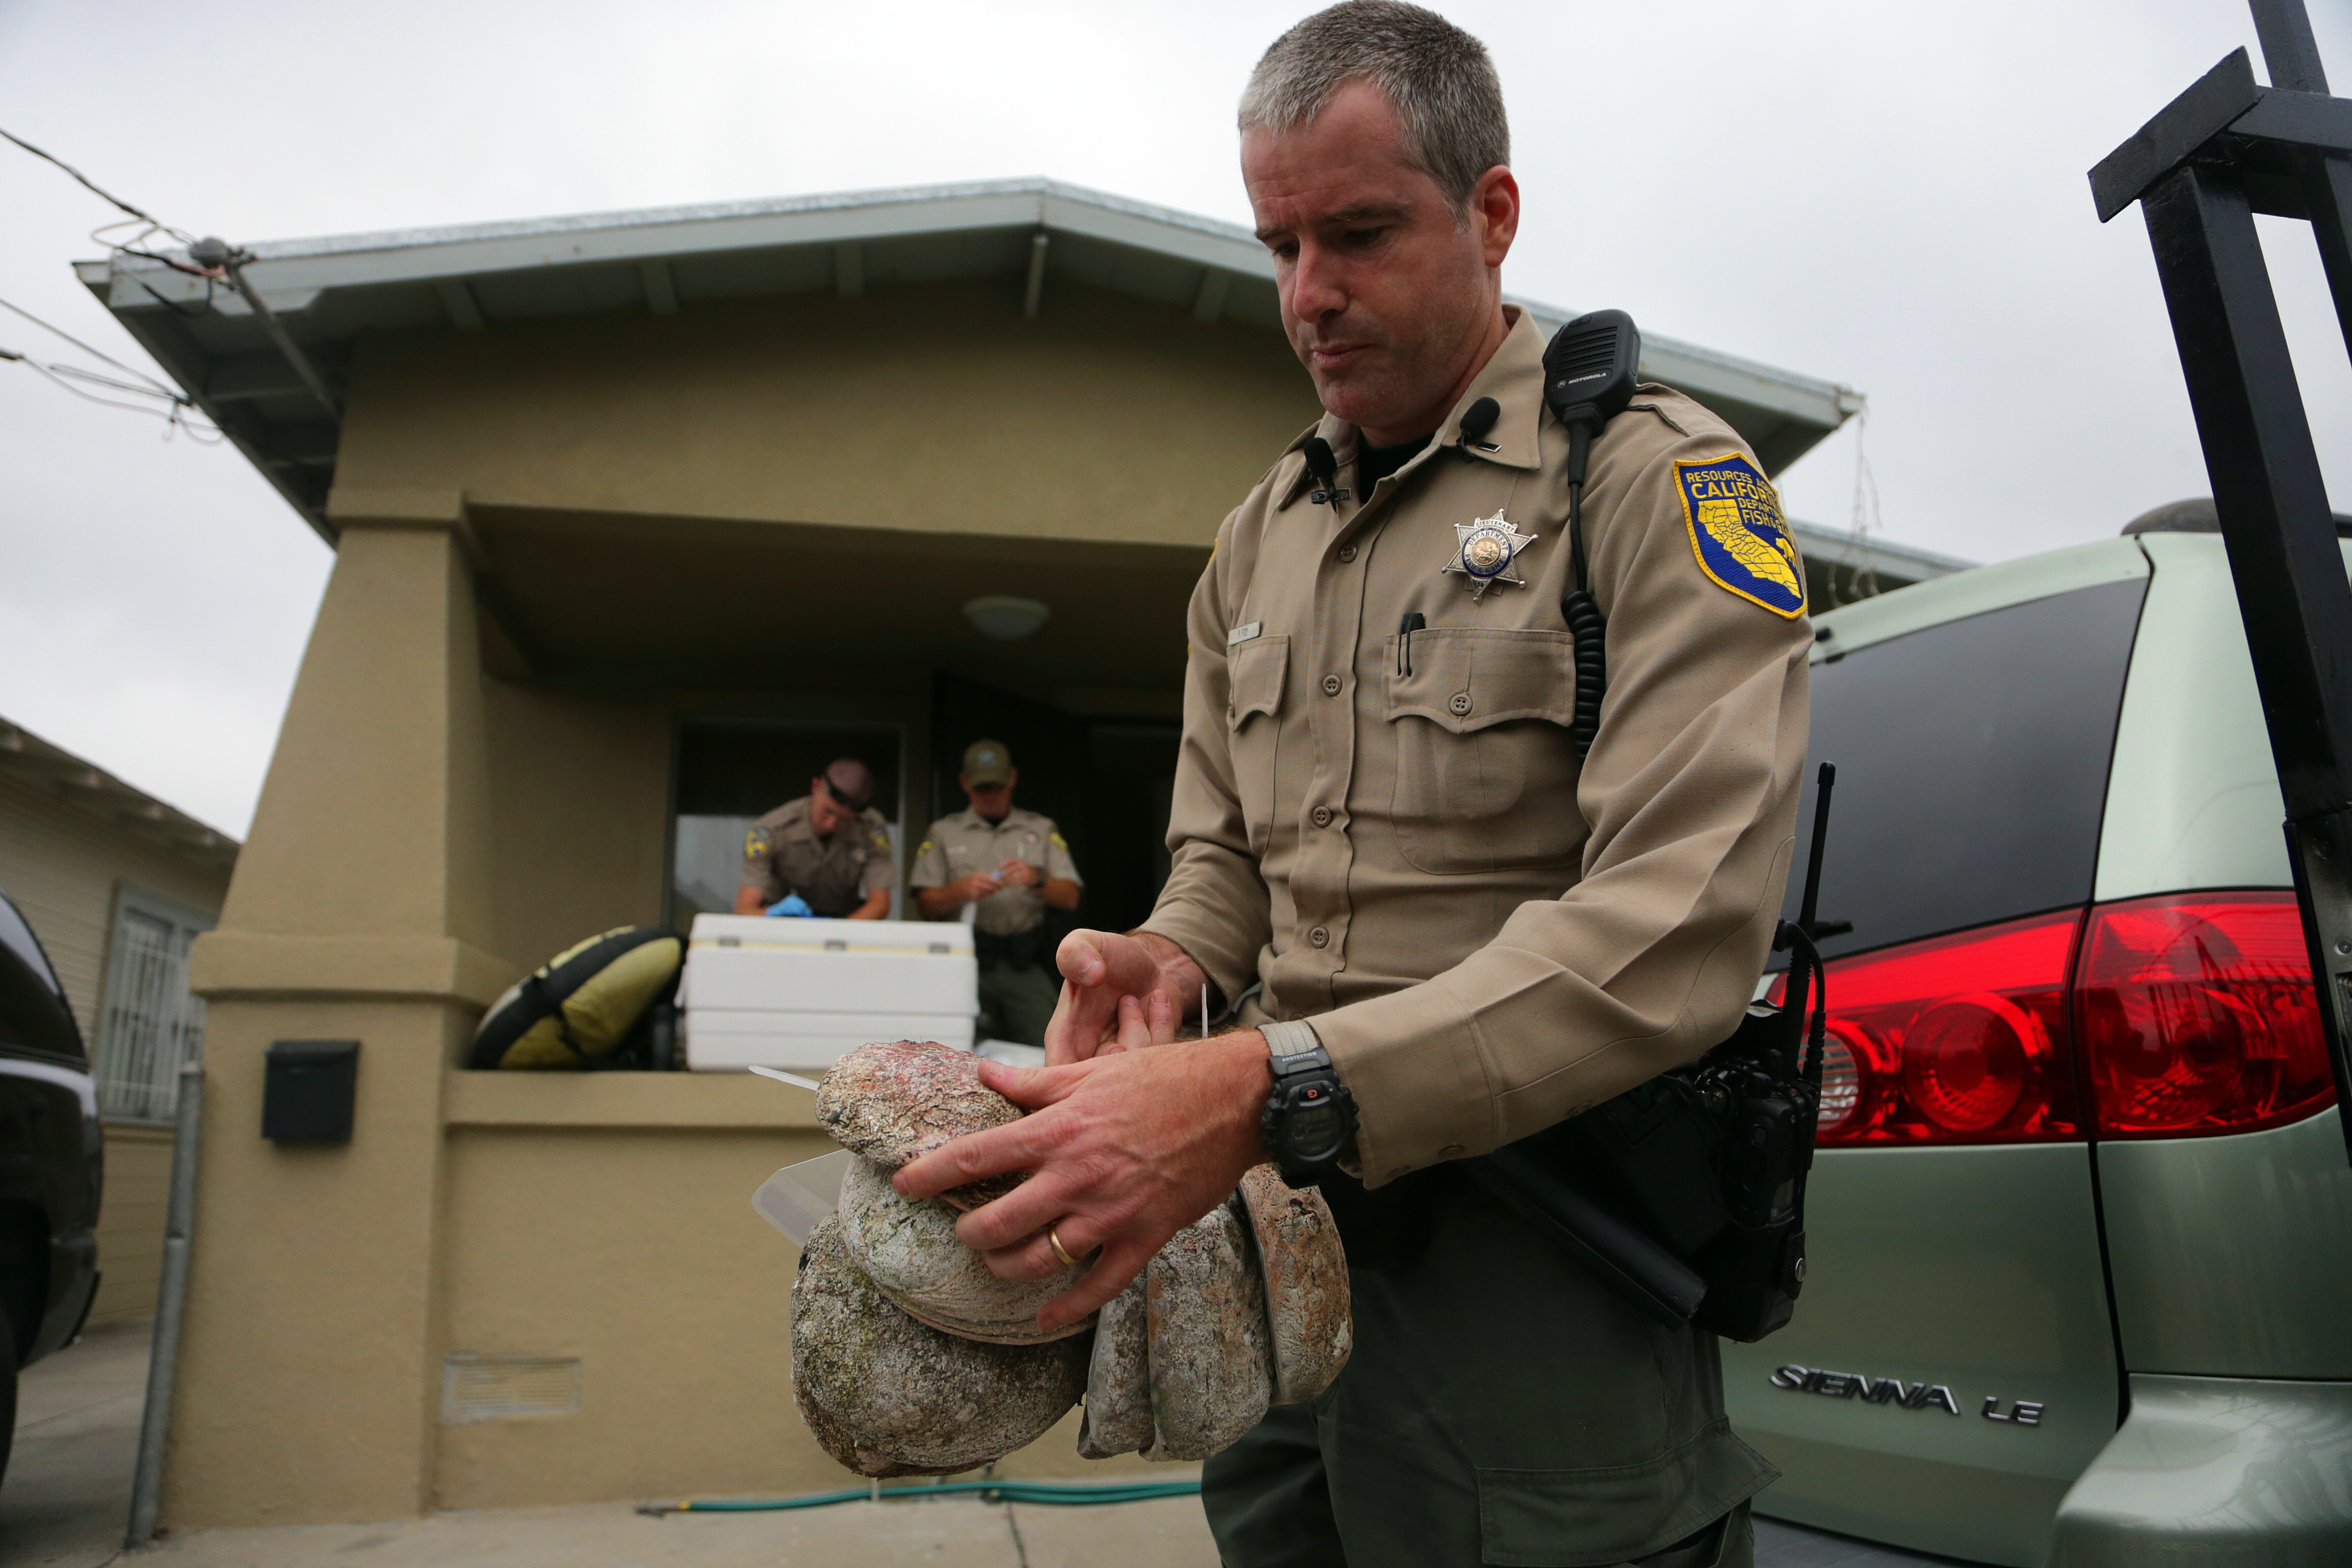 """Above, Patrick Foy of the California Department of Fish and Wildlife examines abalone shells seized from suspected poachers in Oakland. Wardens from across the state raided 14 Bay Area homes, targeting a poaching ring driven by the mollusk's status as a delicacy in many Asian cultures. At left, Dwayne Dinucci's vanity plate declares his love for """"popping abalone,"""" in Union City."""